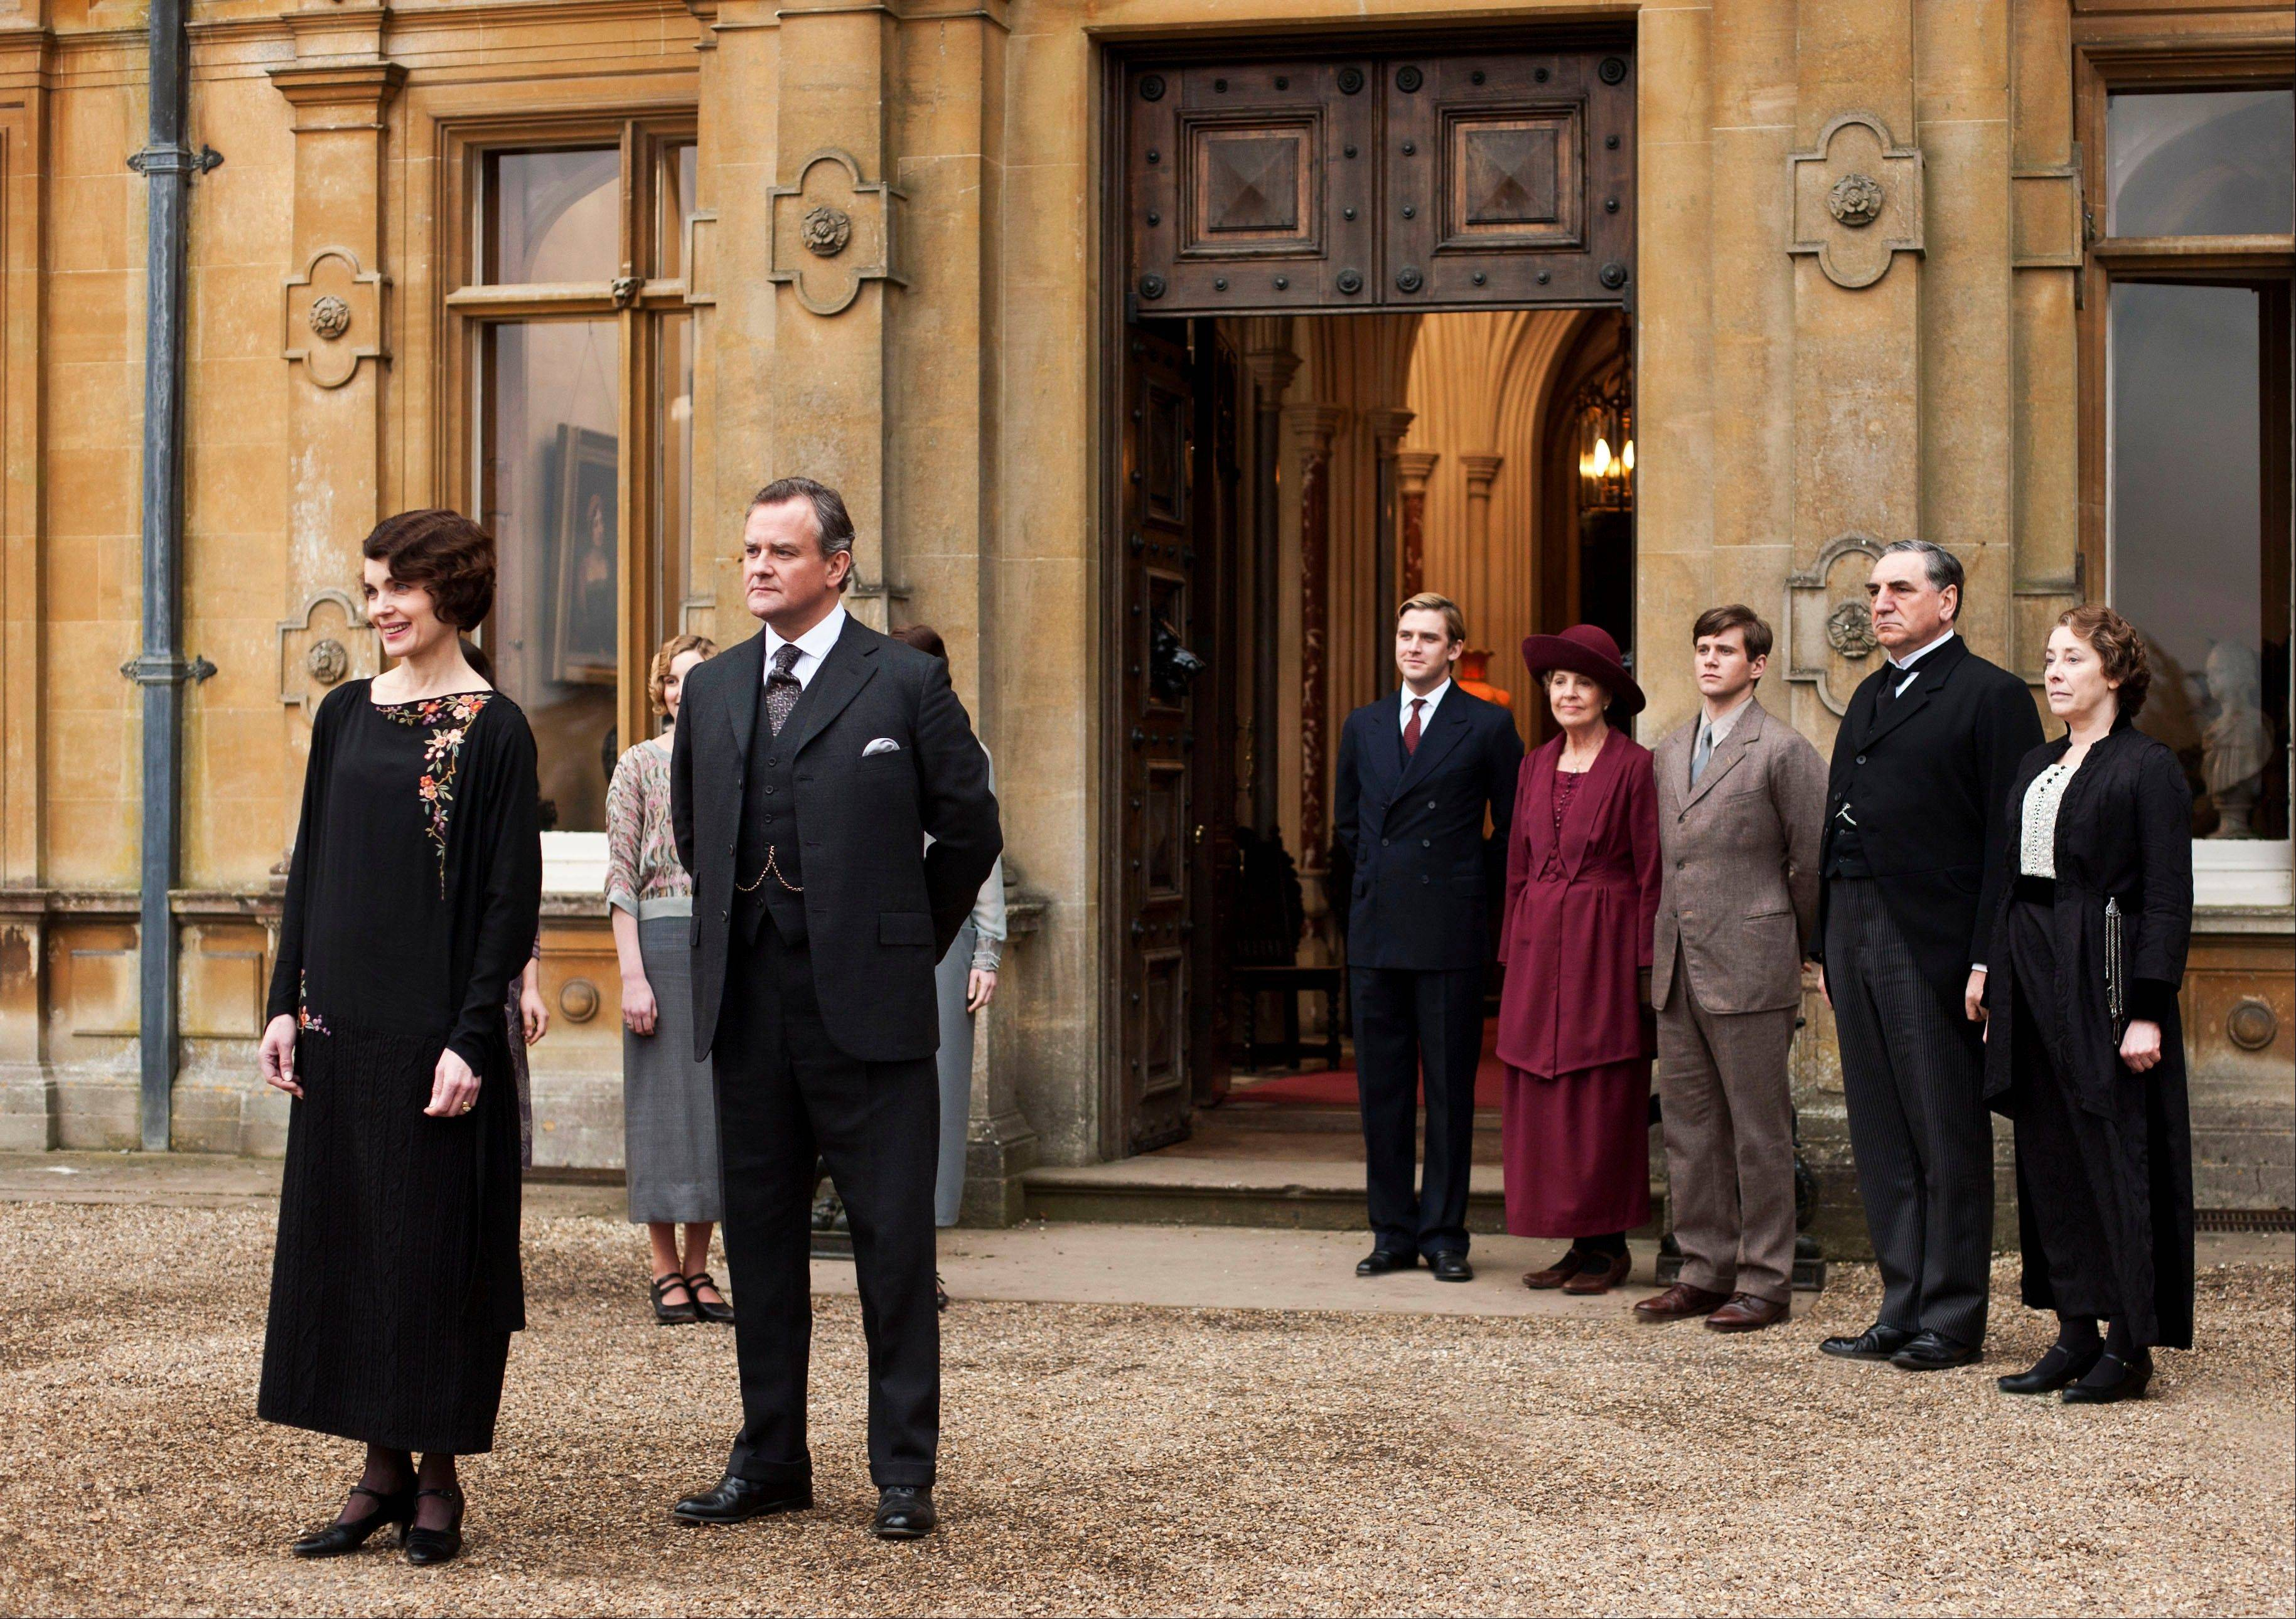 "This undated publicity photo provided by PBS shows, from left, Elizabeth McGovern as Lady Grantham, Hugh Bonneville as Lord Grantham, Dan Stevens as Matthew Crawley, Penelope Wilton as Isobel Crawley, Allen Leech as Tom Branson, Jim Carter as Mr. Carson, and Phyllis Logan as Mrs. Hughes, from the TV series, ""Downton Abbey."" On Jan. 29, the final three episodes of Downton Abbey Season 3 will be available to iTunes Season Pass holders in the US and Canada before the episodes air on TV."